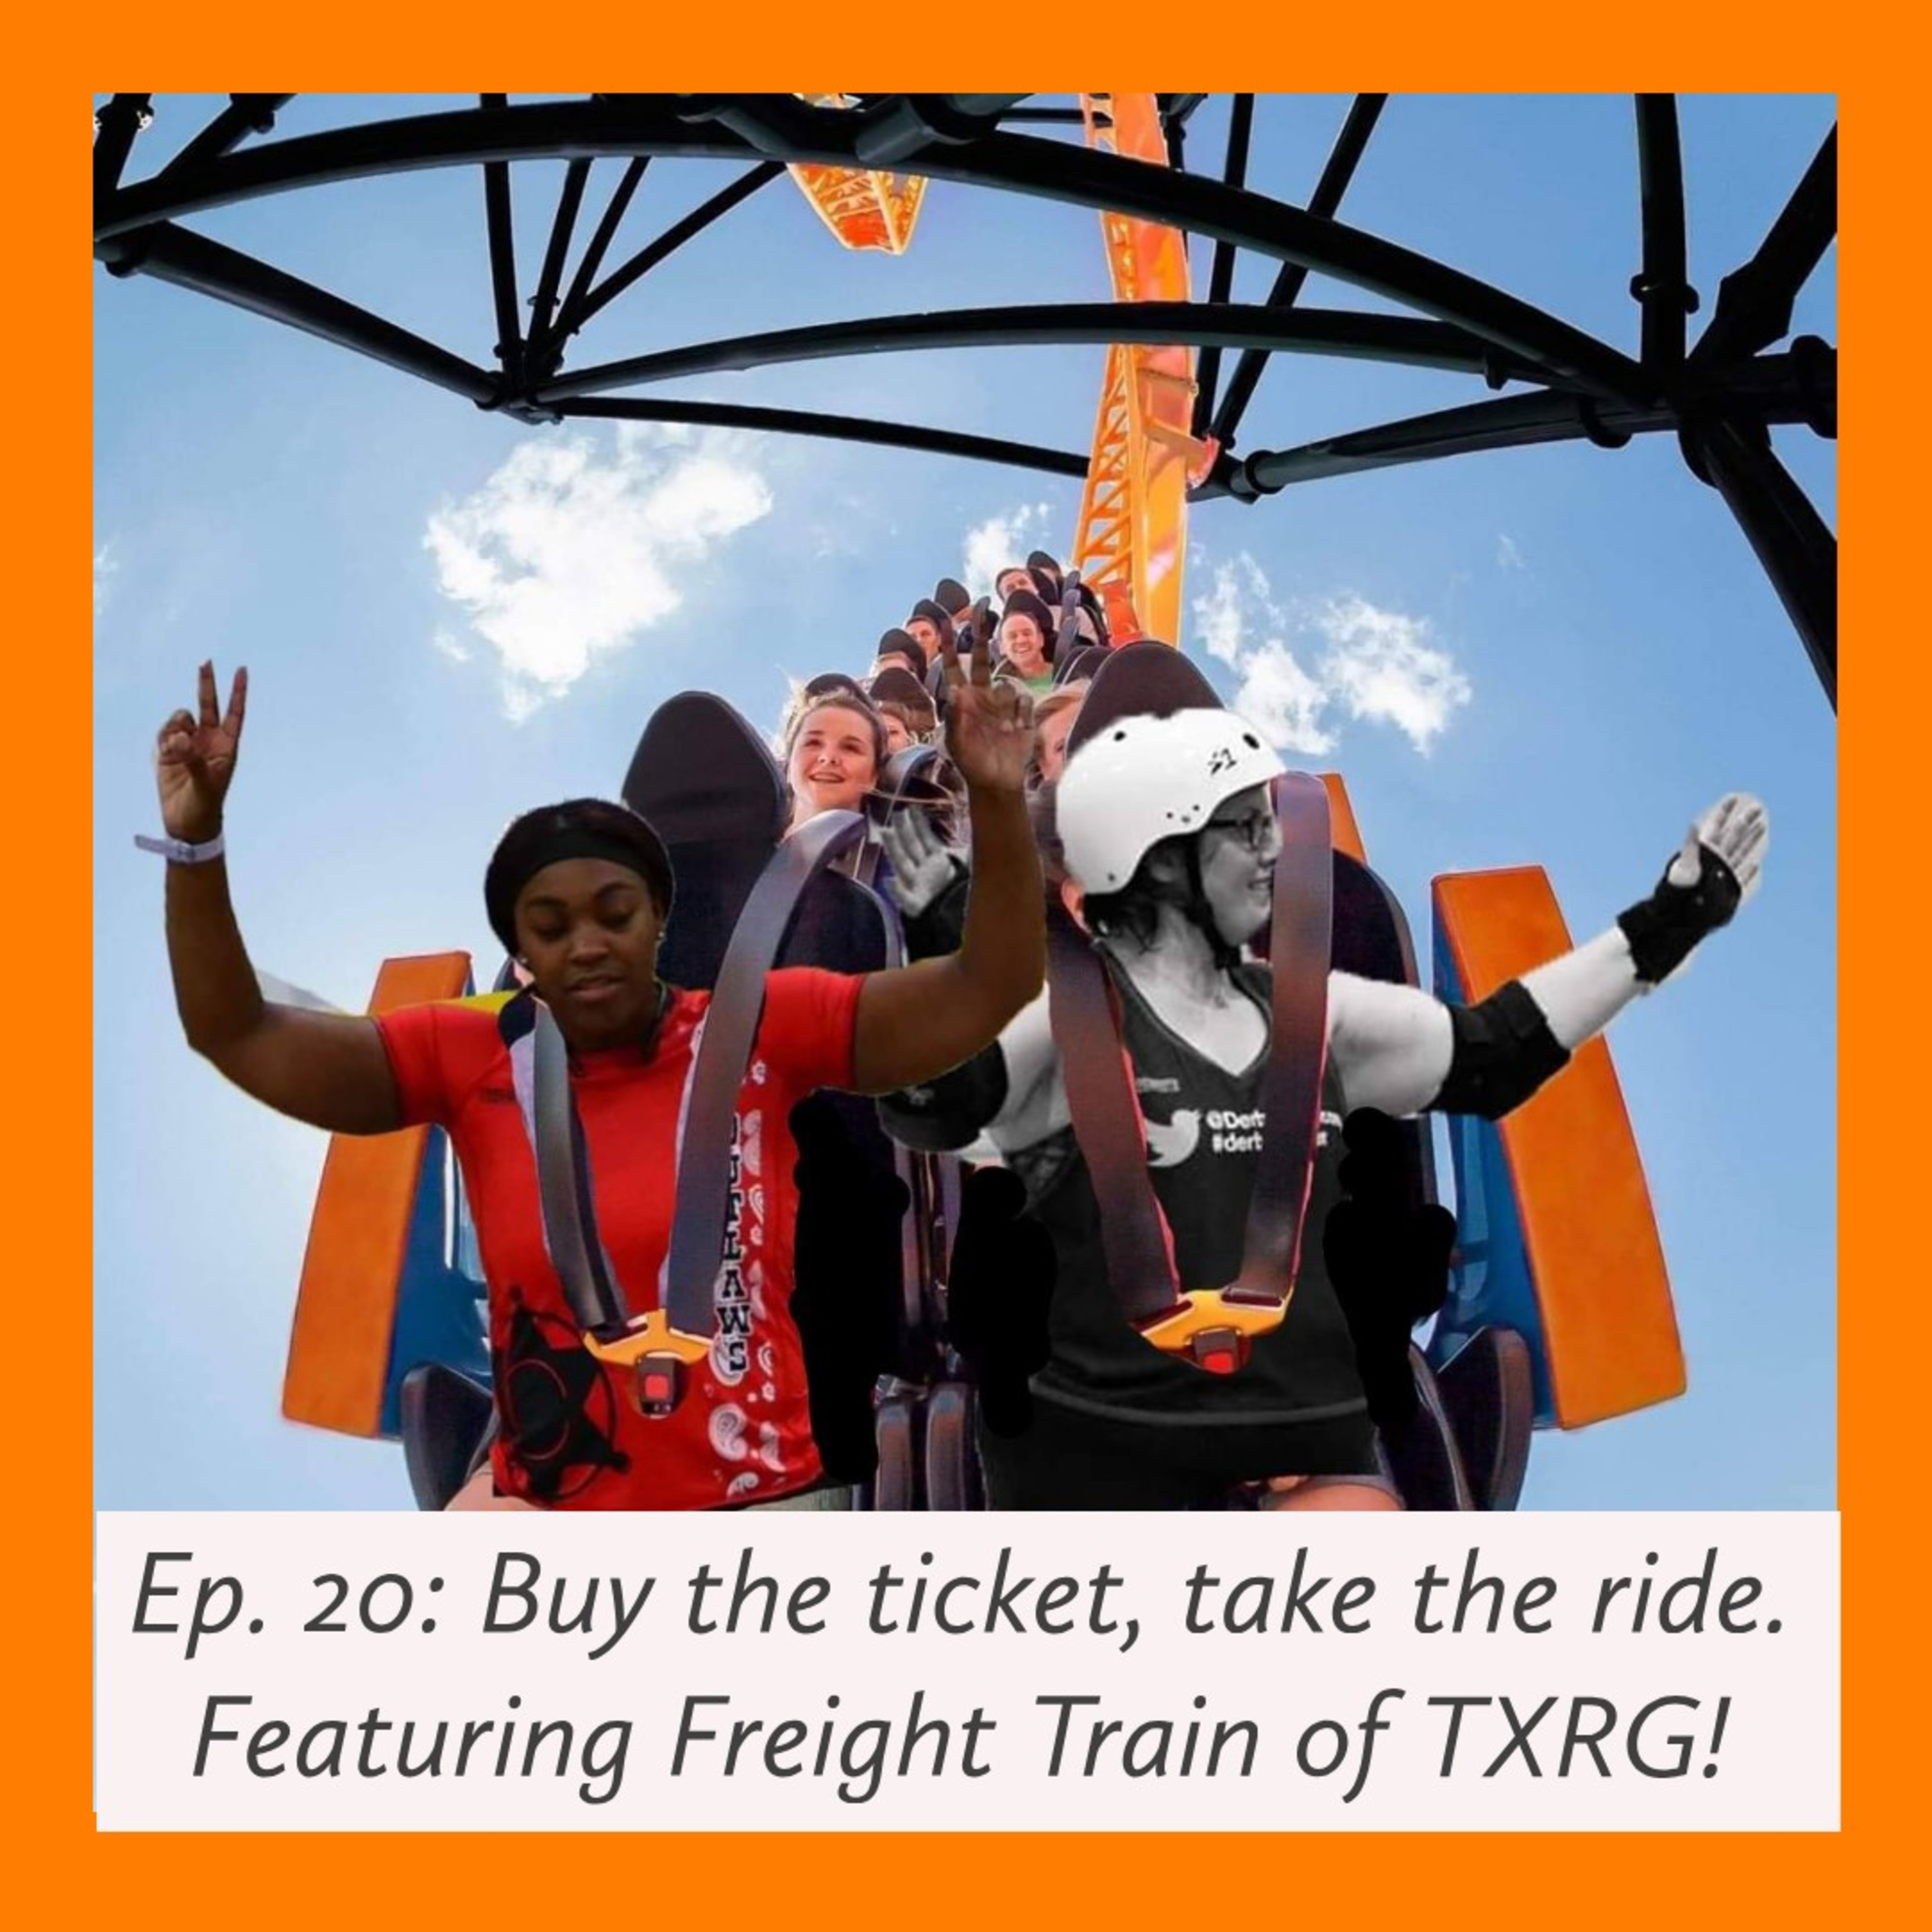 Ep: 20 Buy the ticket, take the ride. Featuring Freight Train of TXRG!